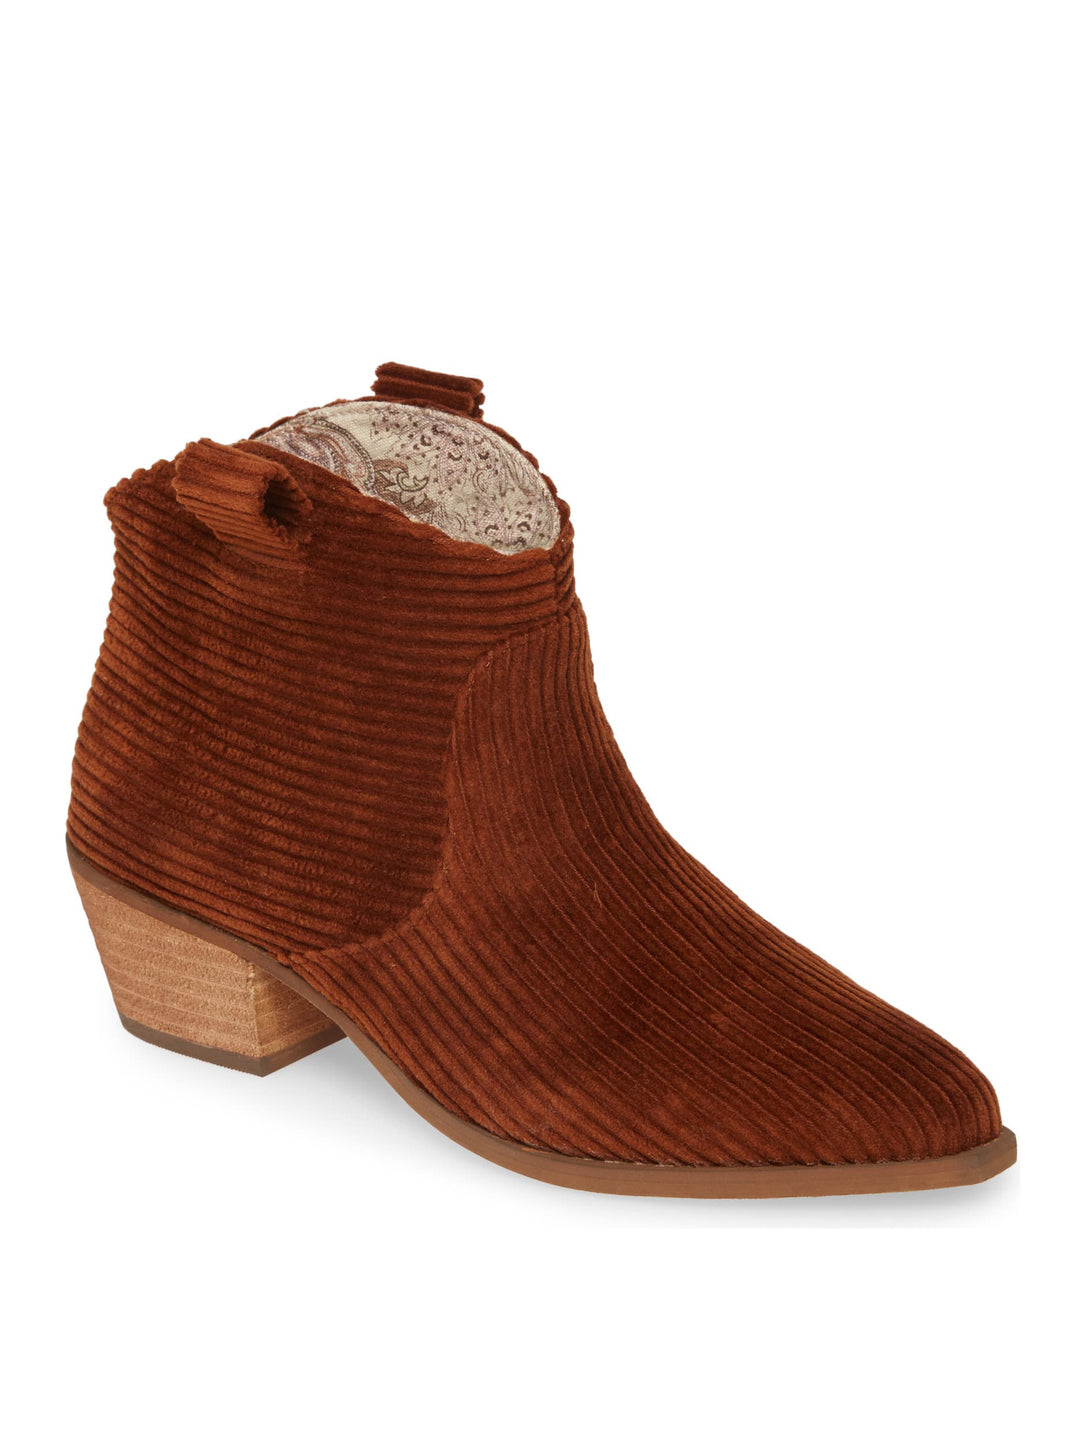 Delta Rust Washed Corduroy Booties